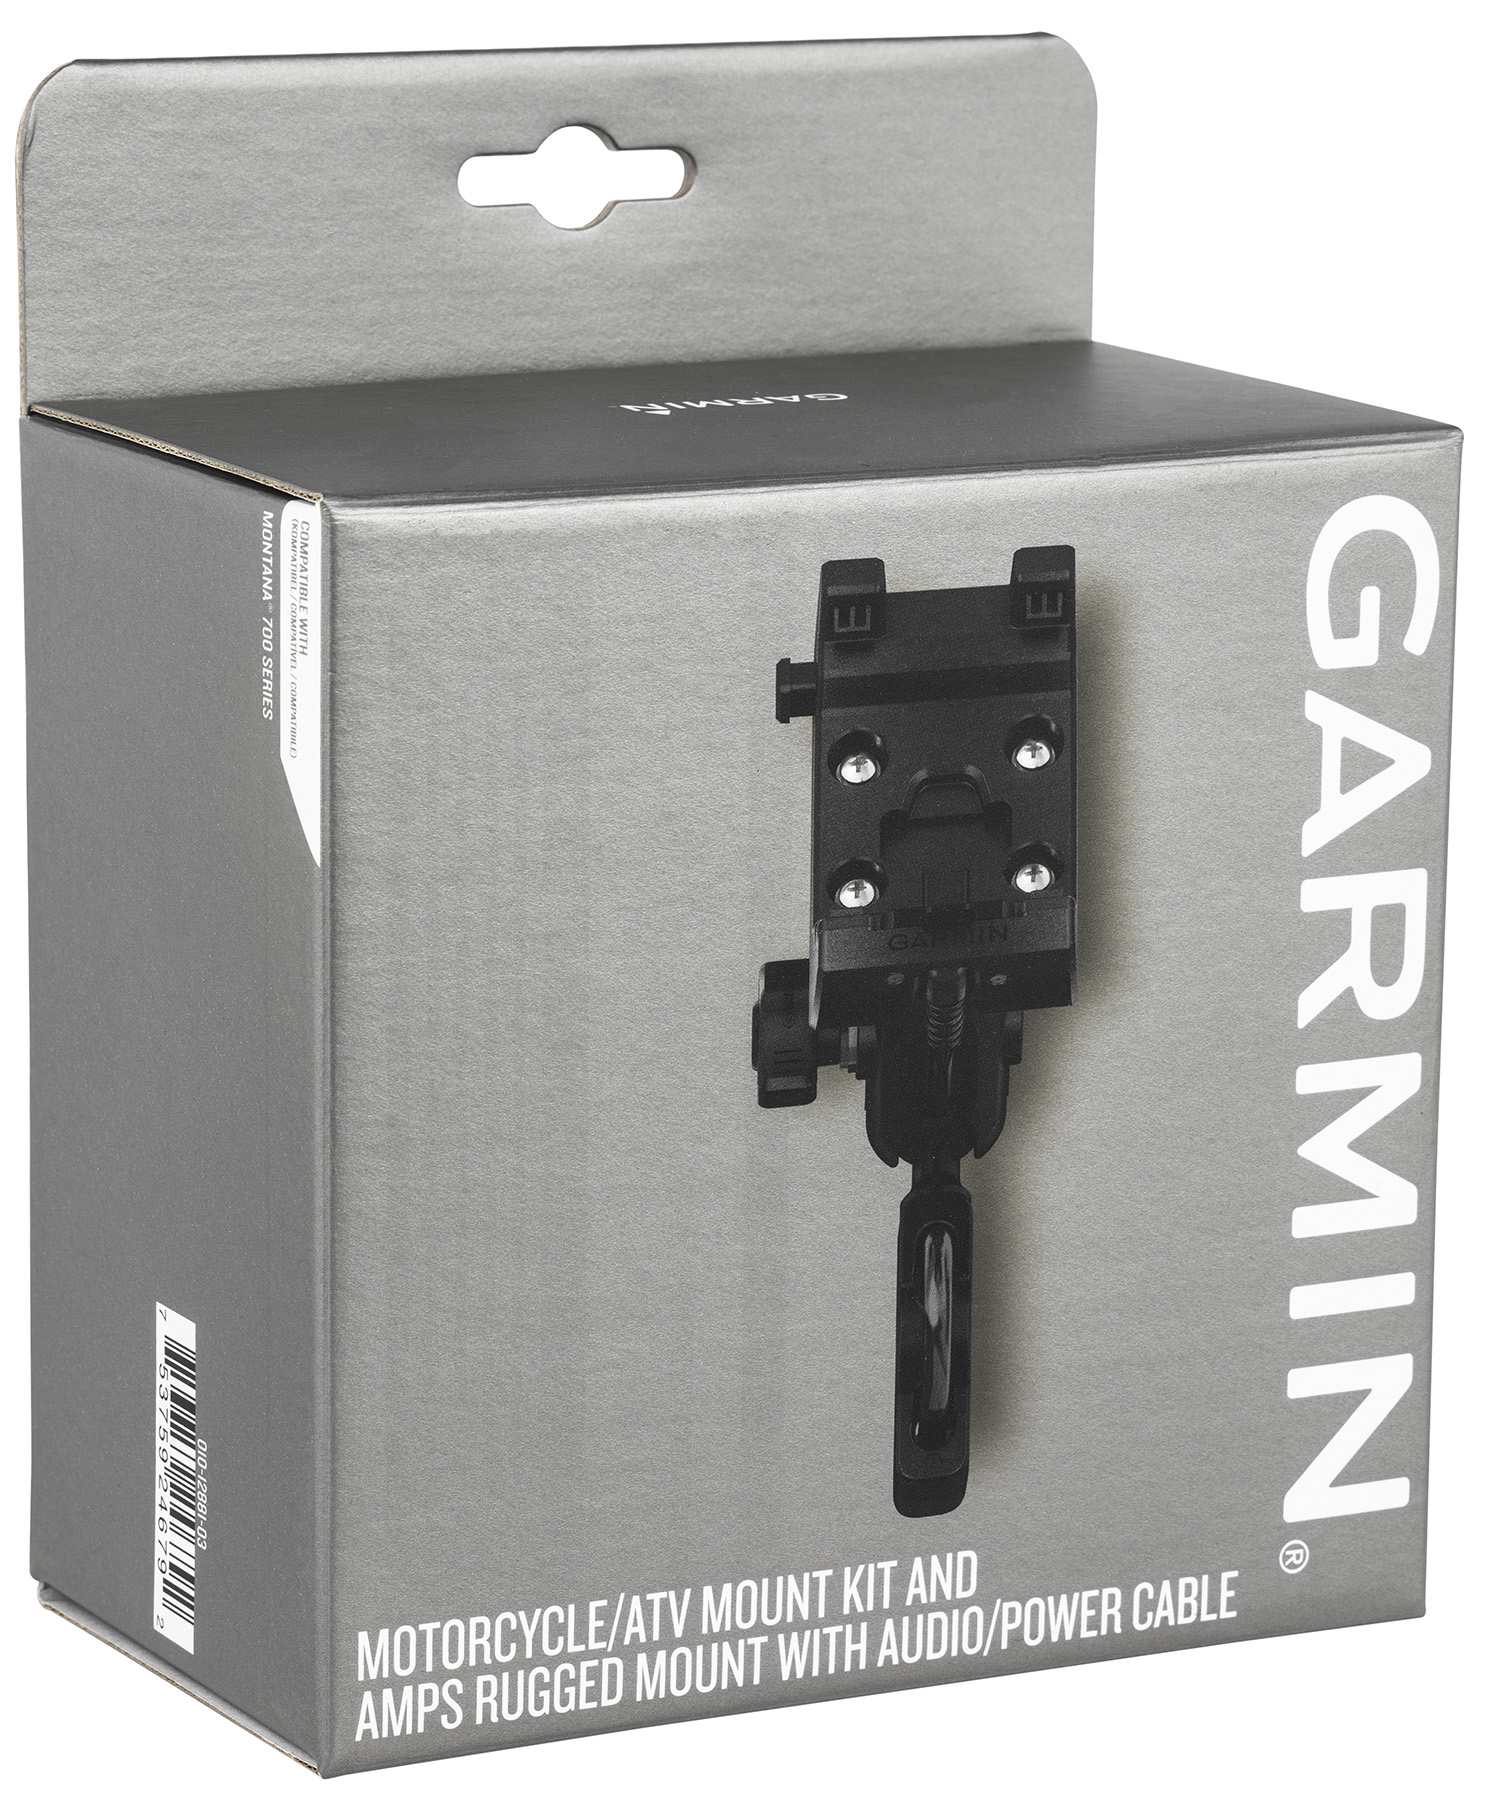 Garmin 0101288103 Motorcycle/ATV Mount Kit Black